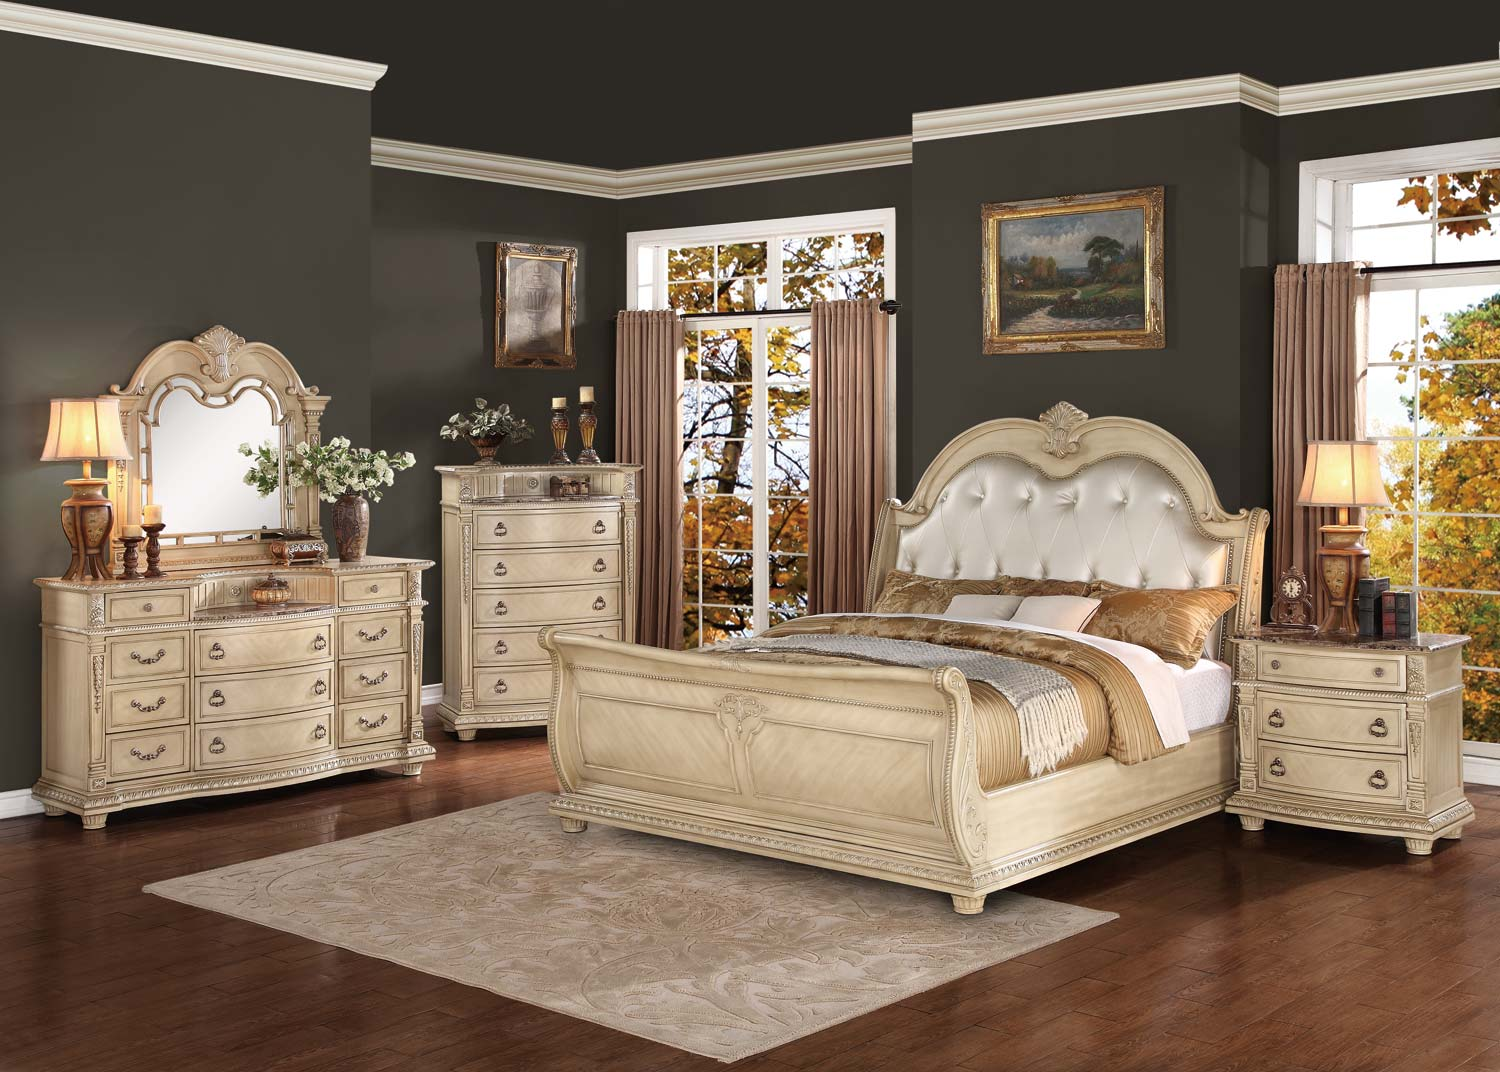 Homelegance palace ii upholstered bedroom set antique Bedrooms furniture